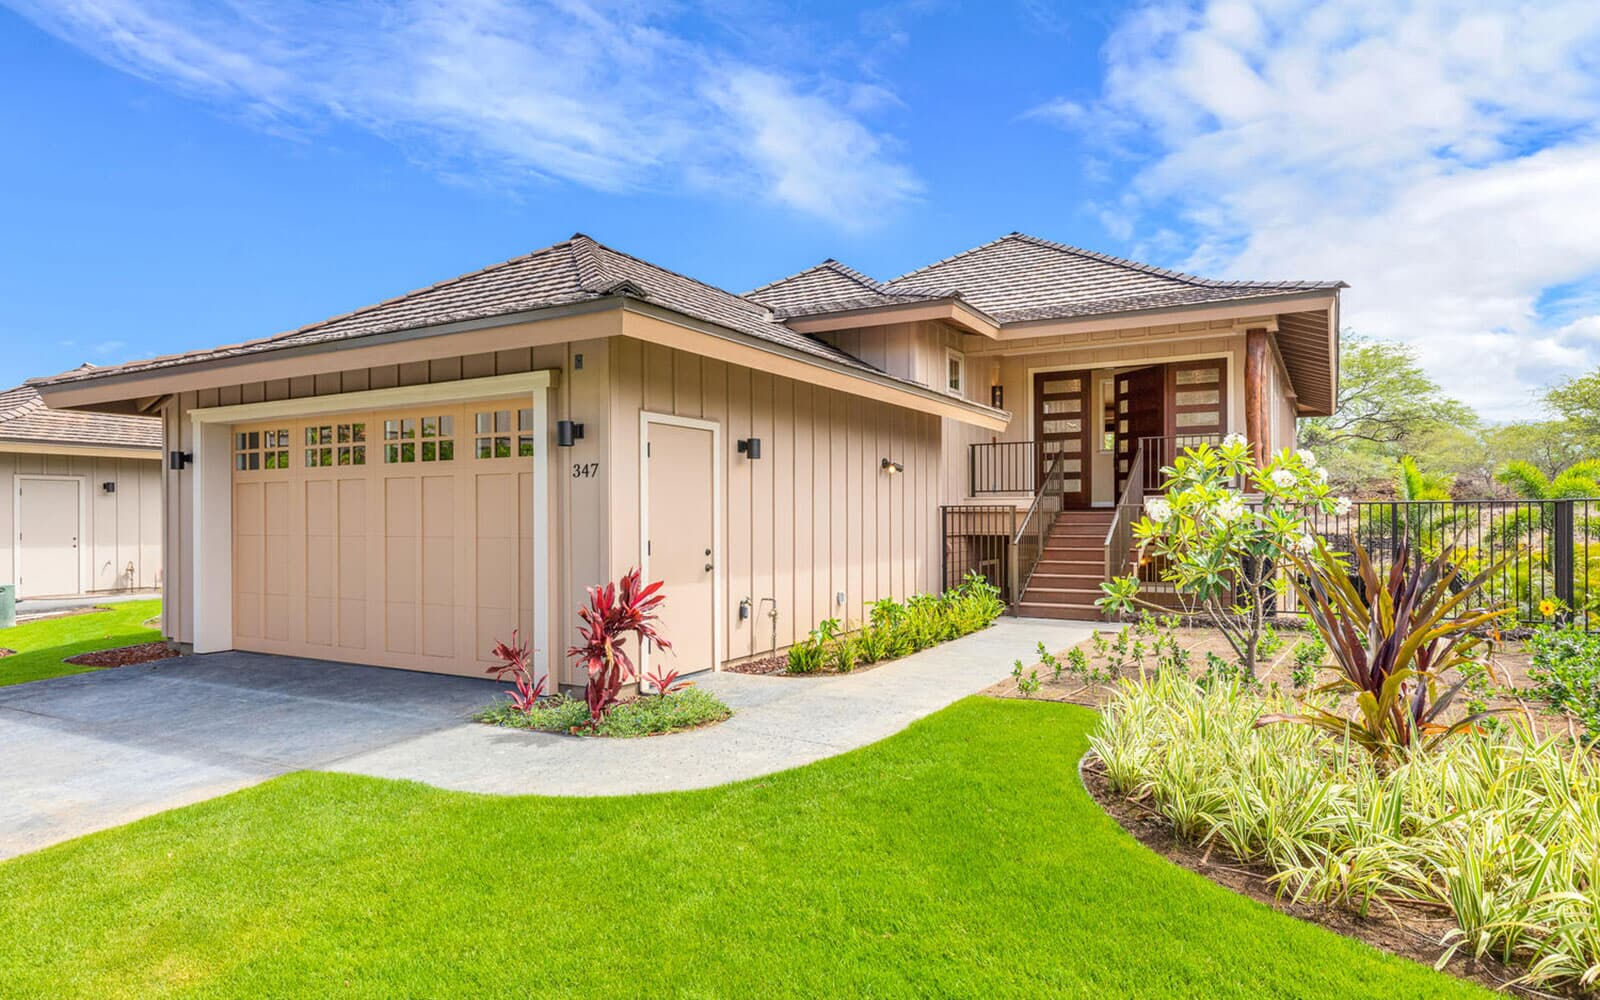 exterior-front-new-home-makani-plan-3-kamilo-at-mauna-lani-big-island-brookfield-residential